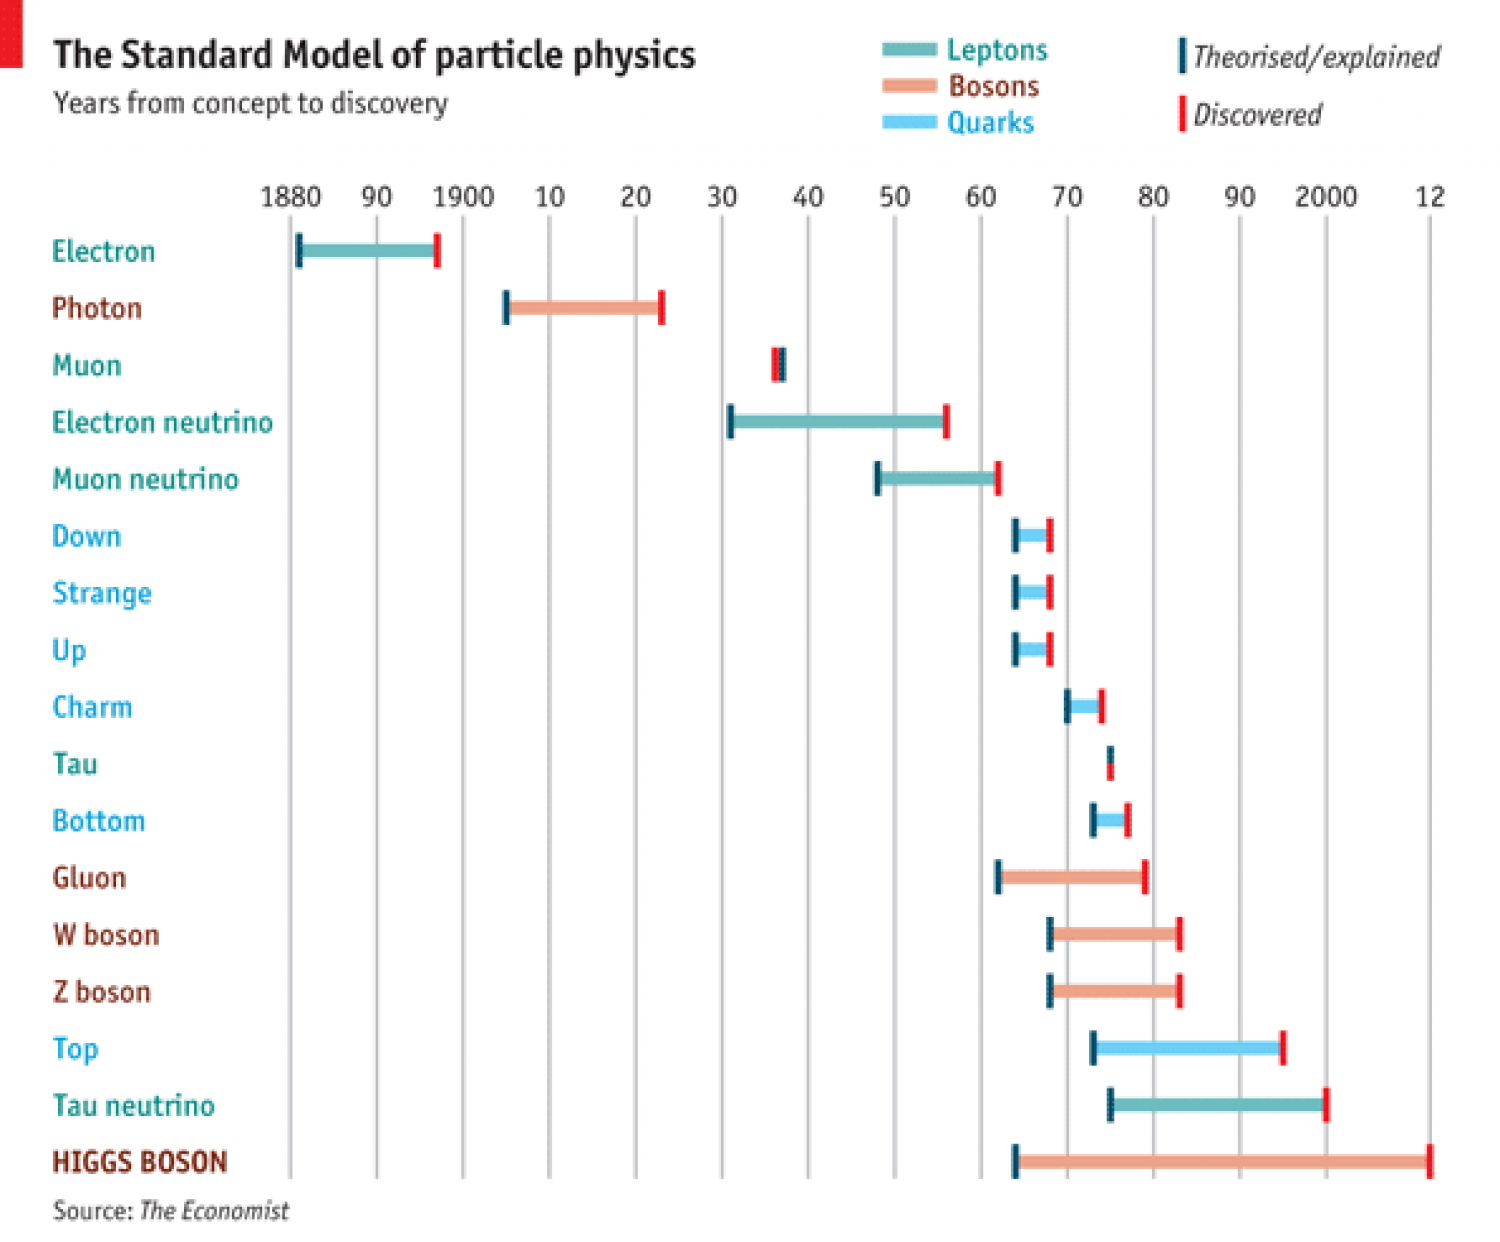 The Standard Model of Particle Physics Timeline Infographic